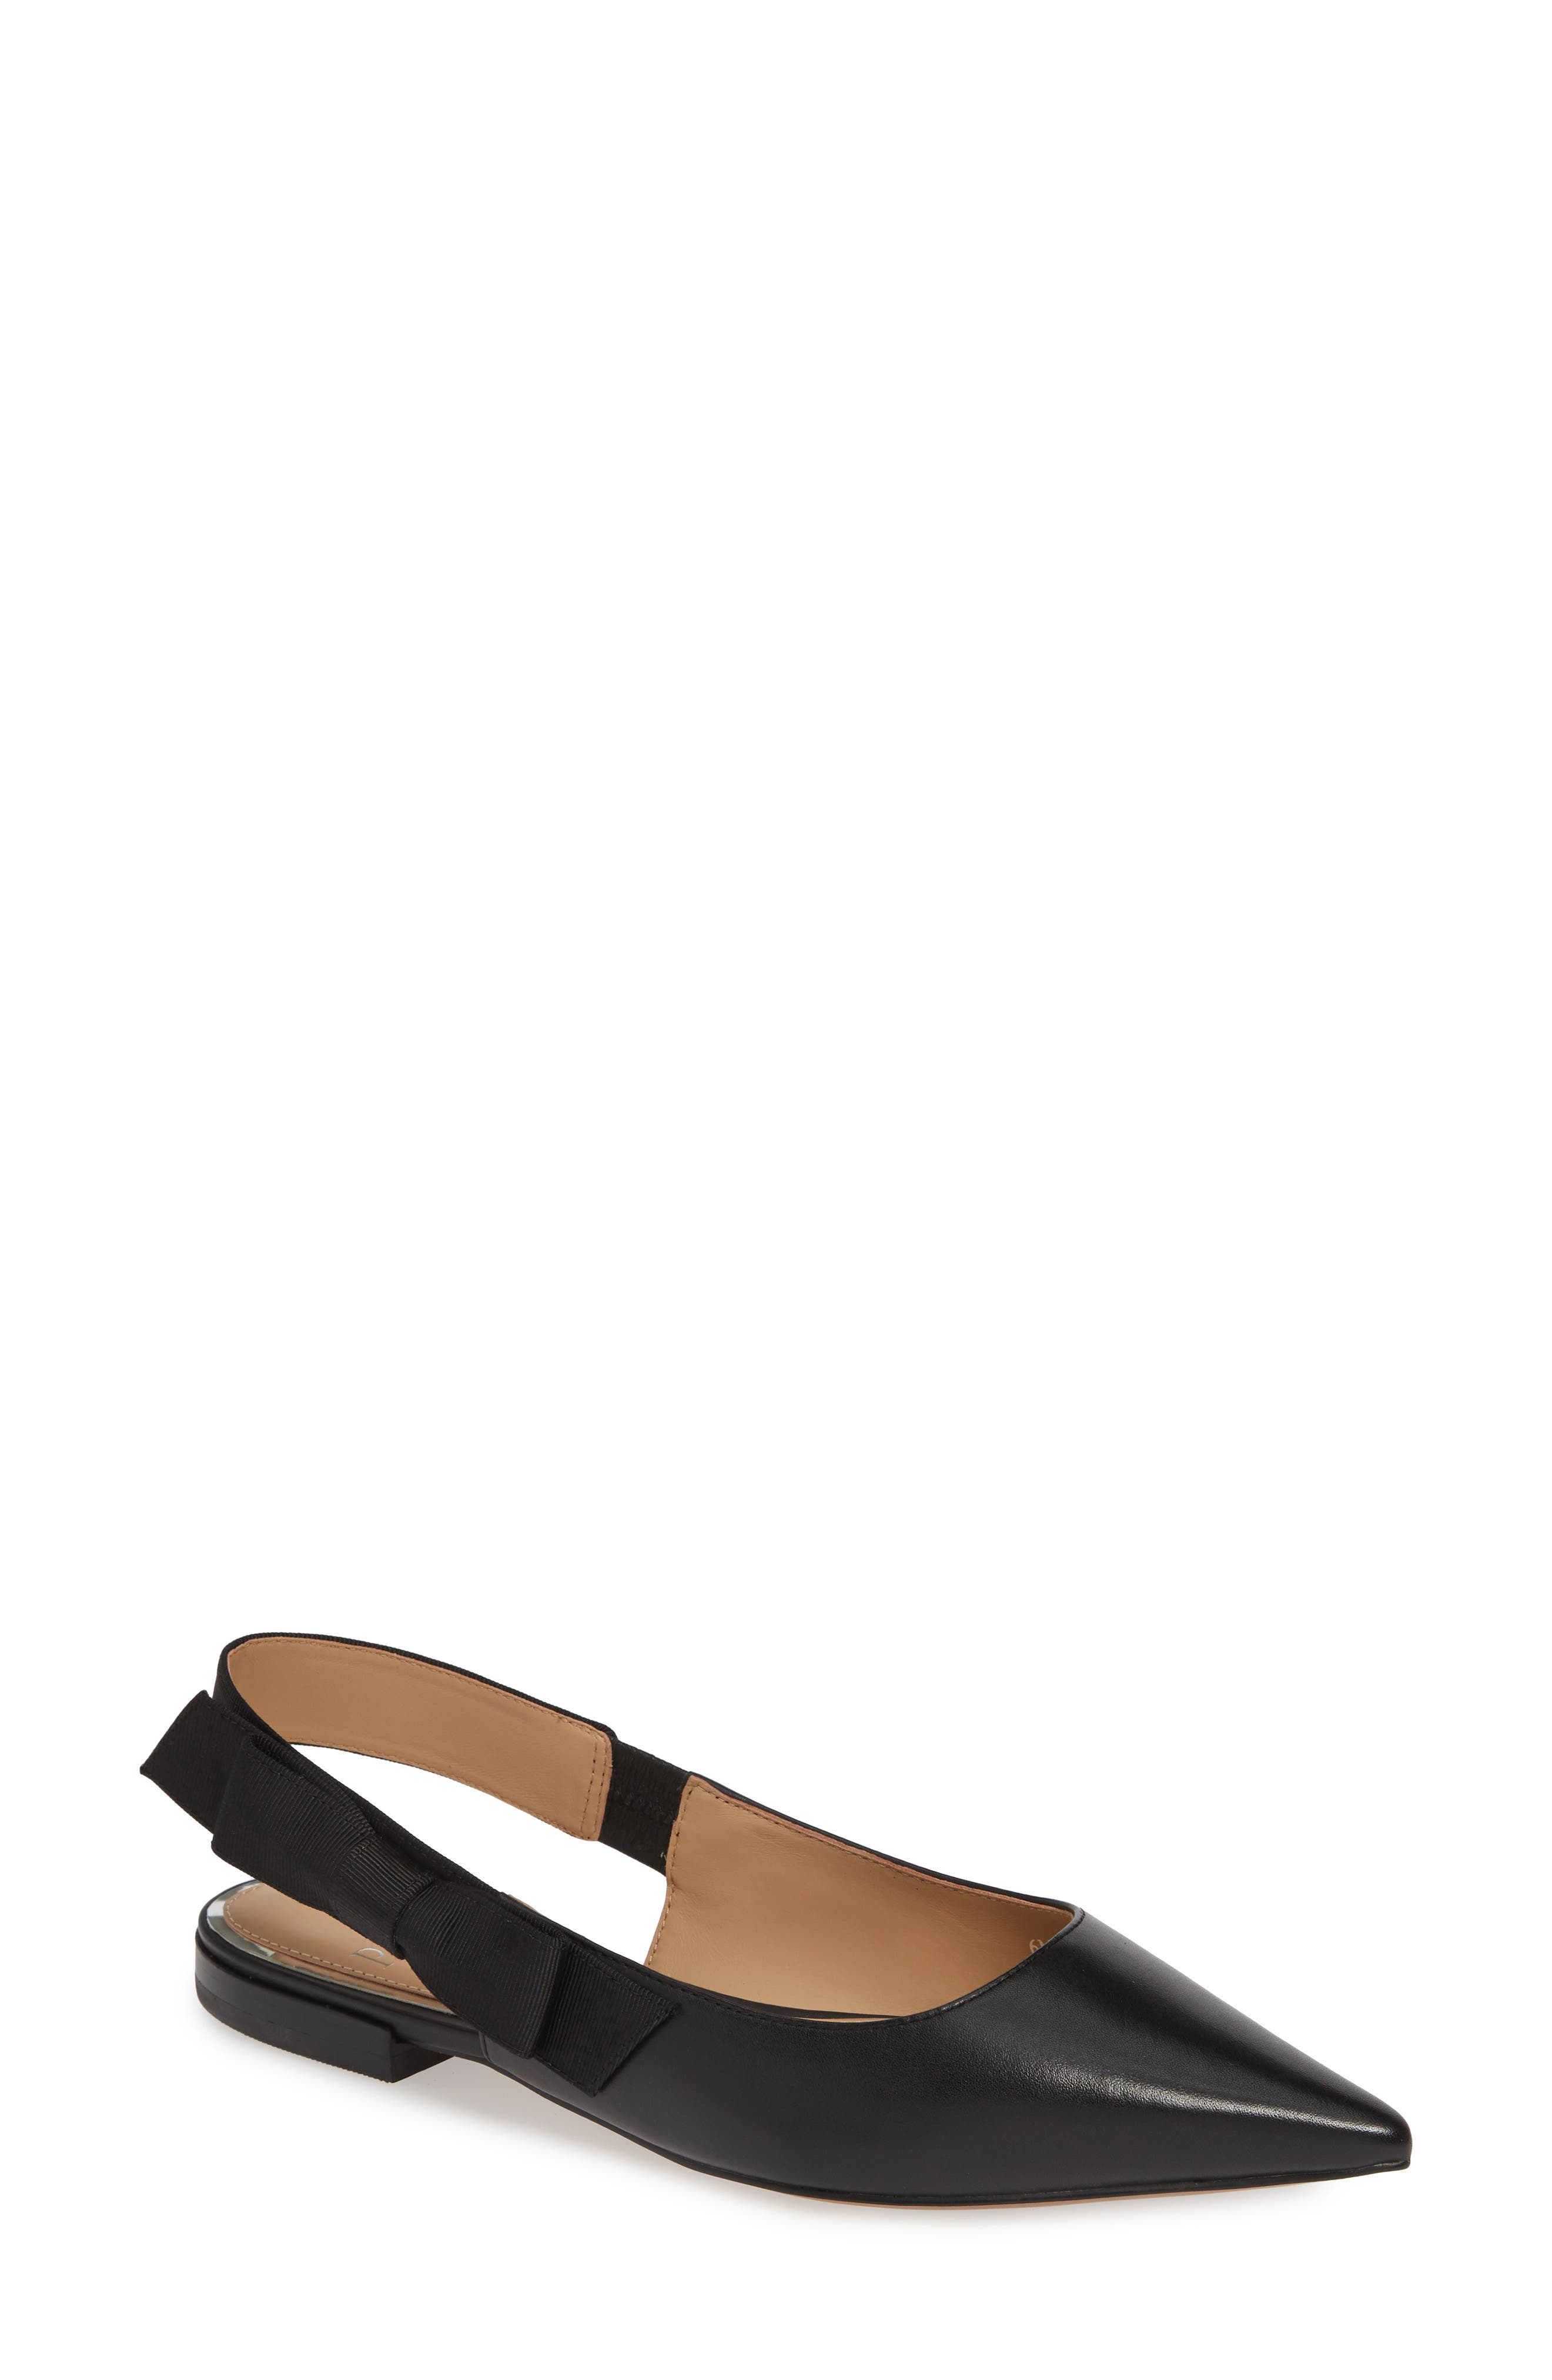 Darcy Bow Slingback Flat,                             Main thumbnail 1, color,                             BLACK LEATHER